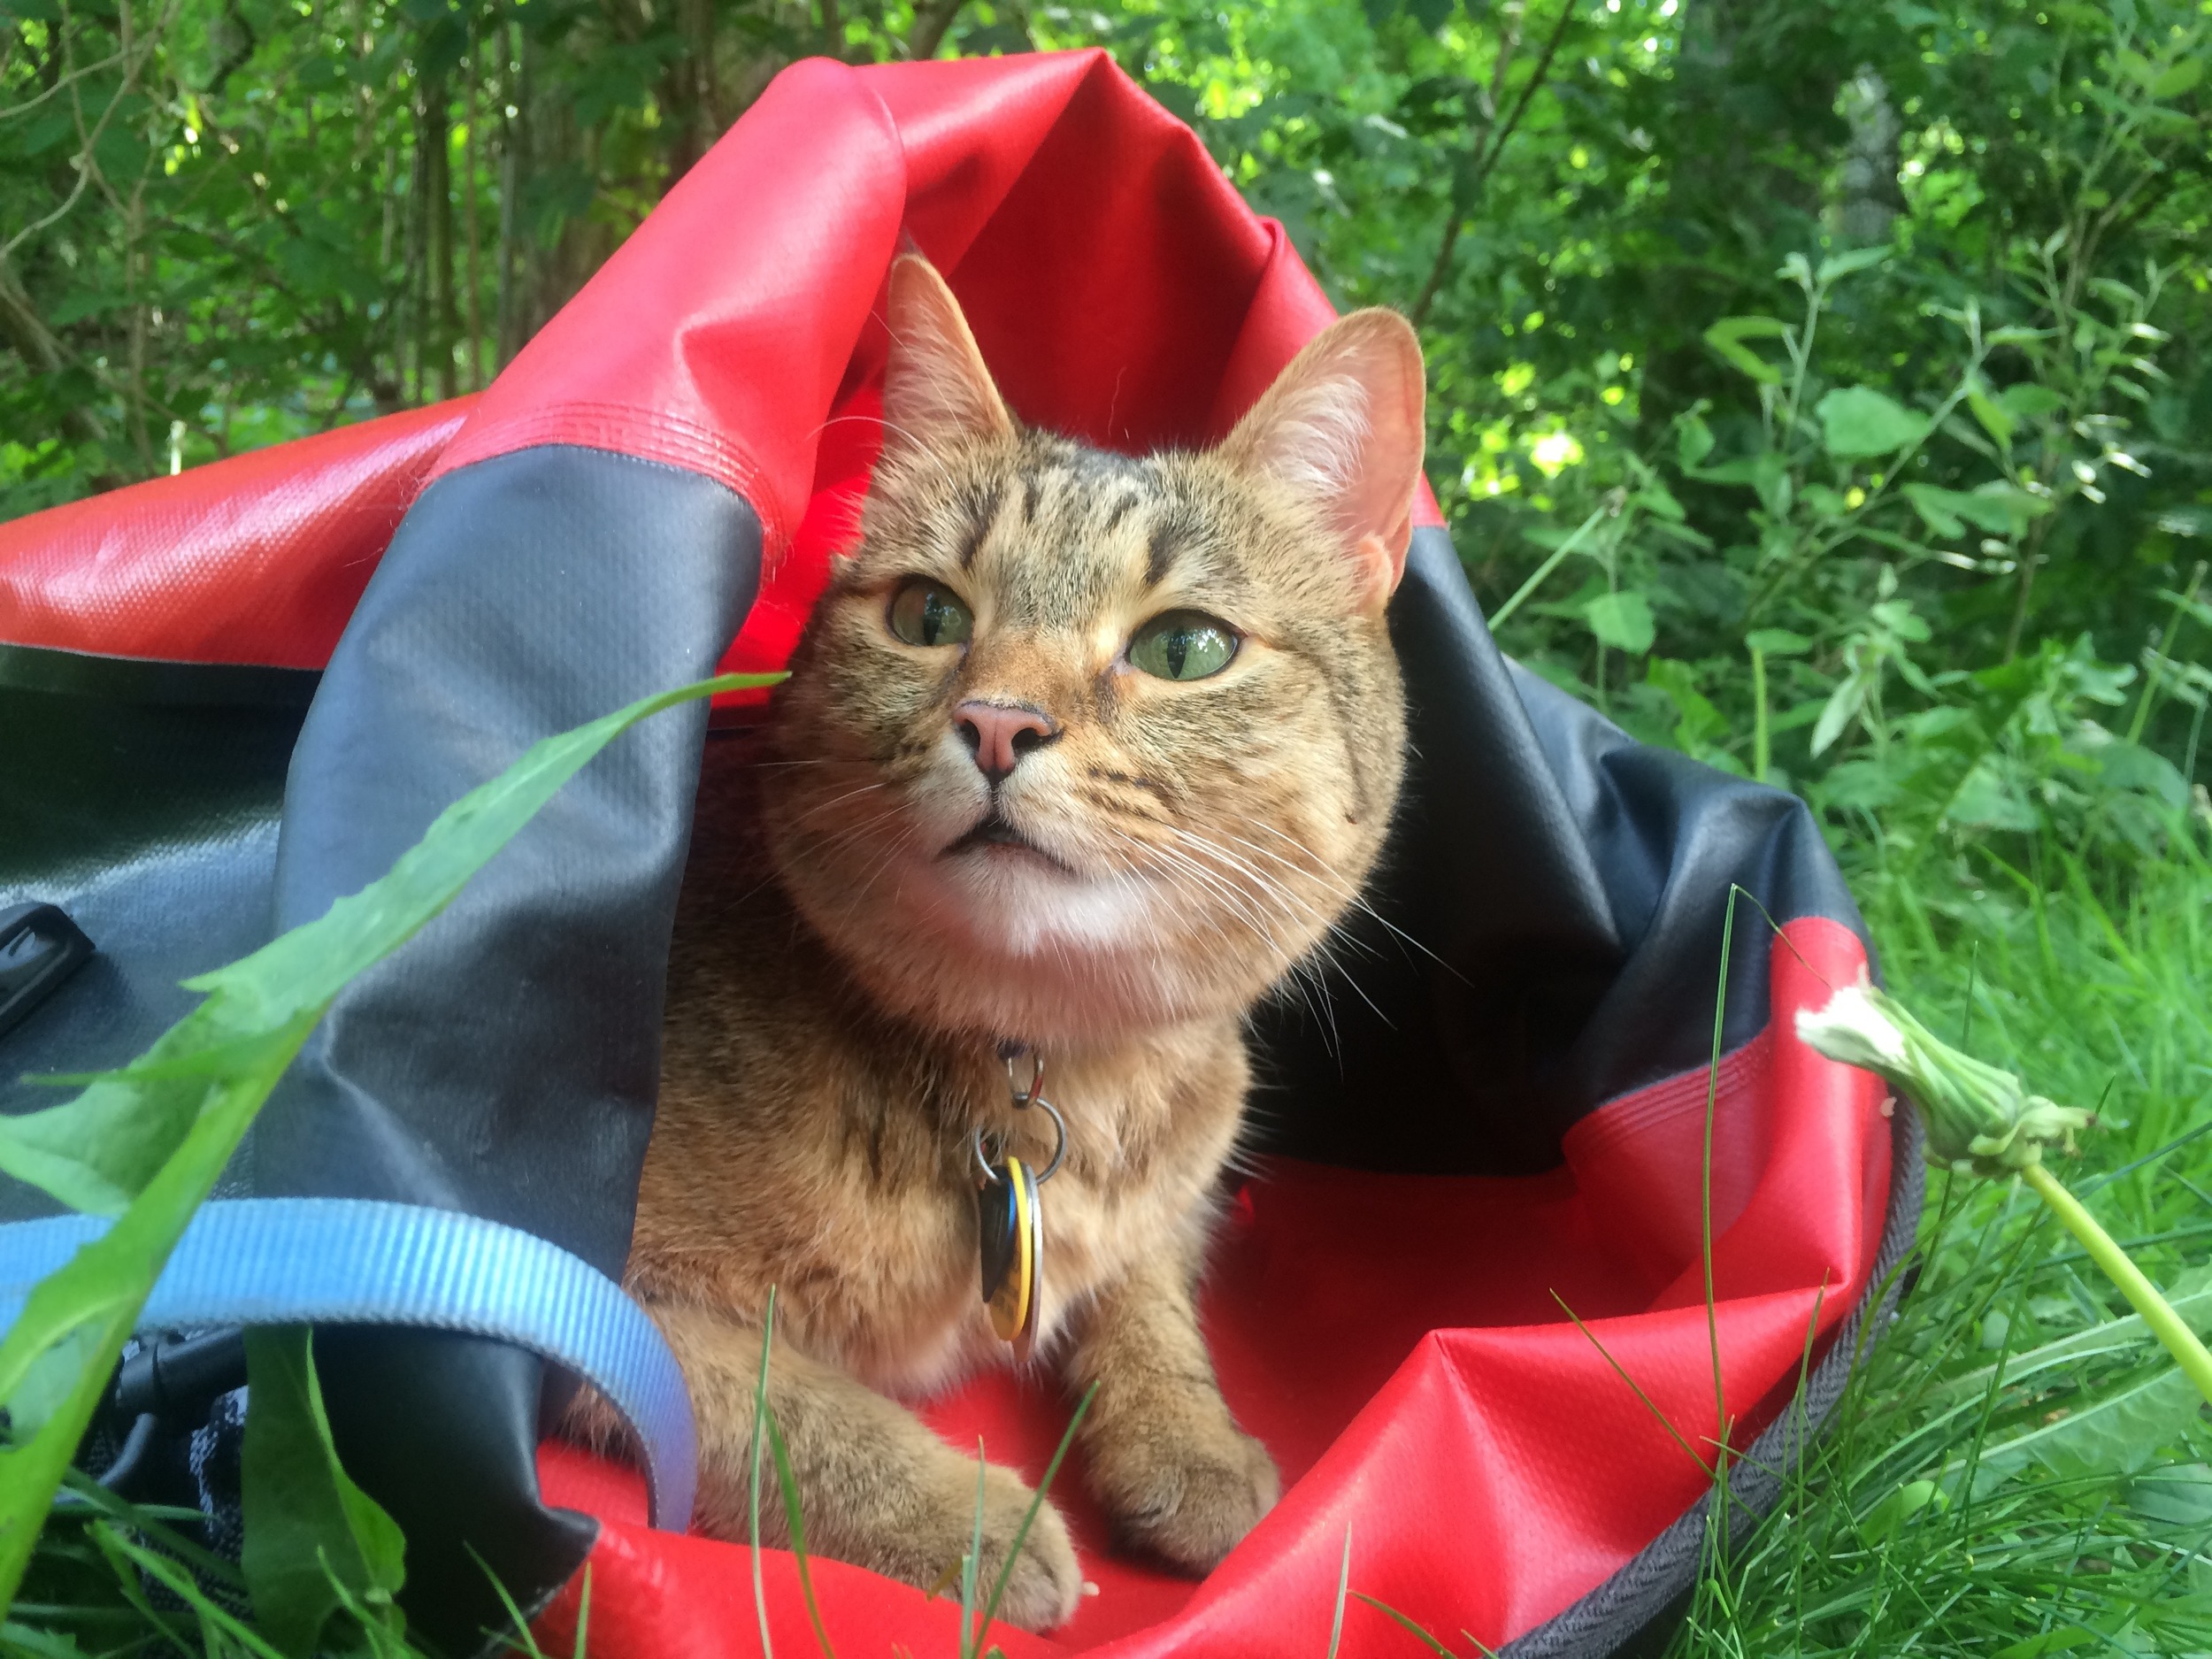 Pro tip - Bring a good pannier with you, that the cat can use to hide out in if it finds the open spaces of your destination stressful. Pannier = portable cave